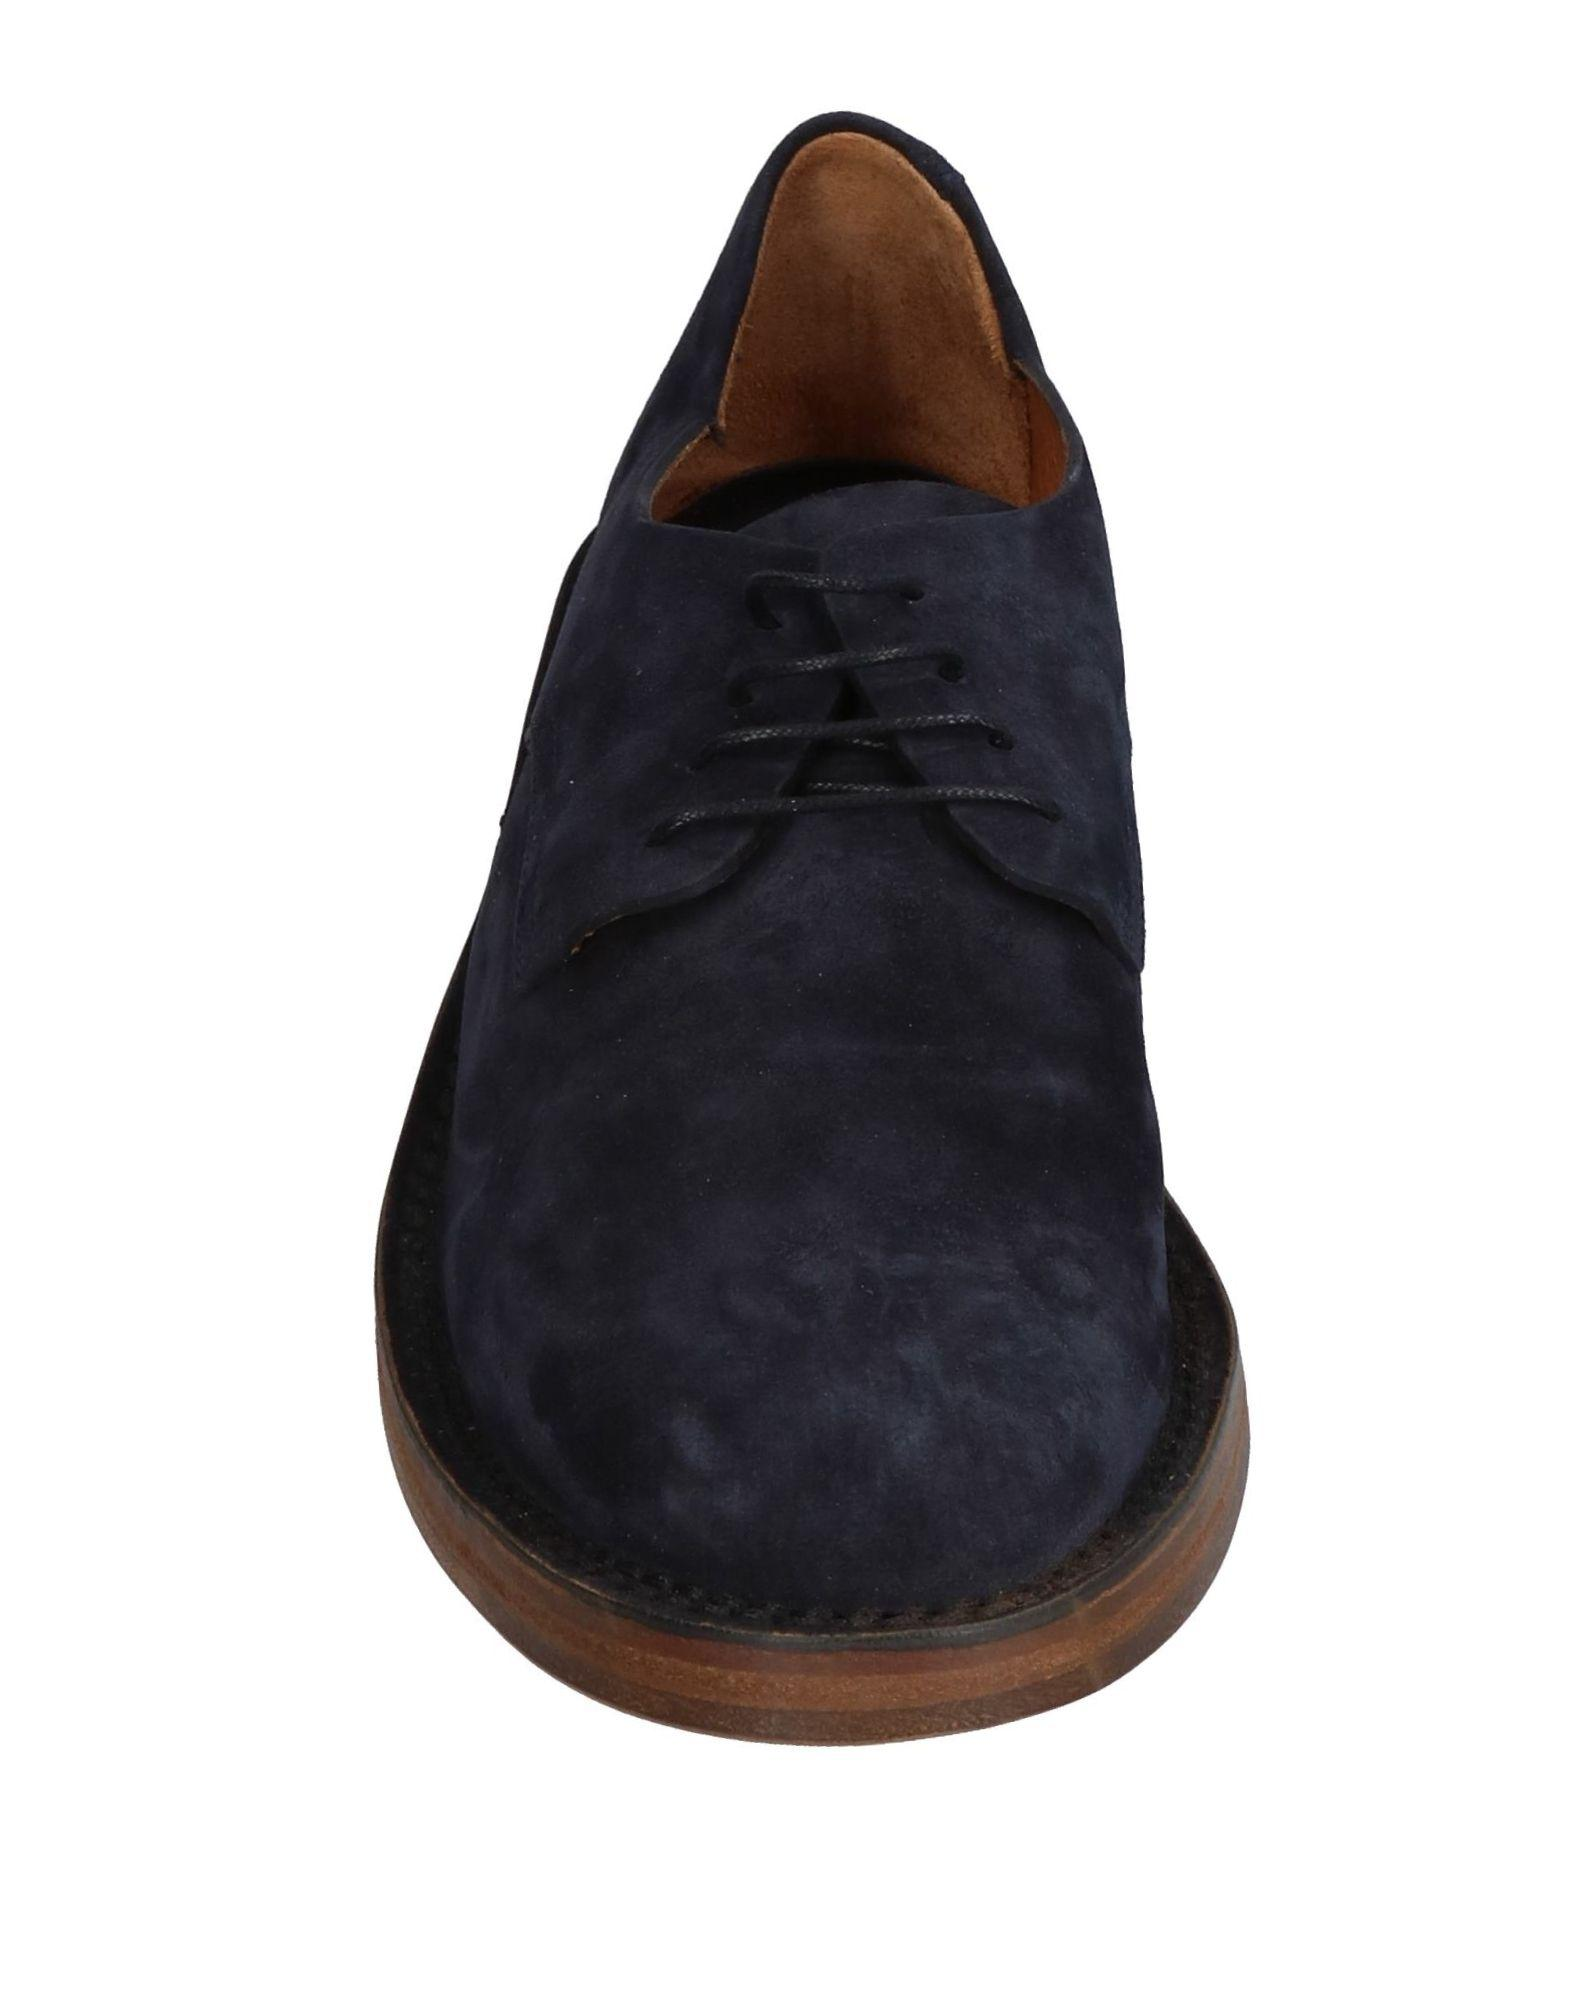 Buttero Leather Lace-up Shoe in Dark Blue (Blue) for Men